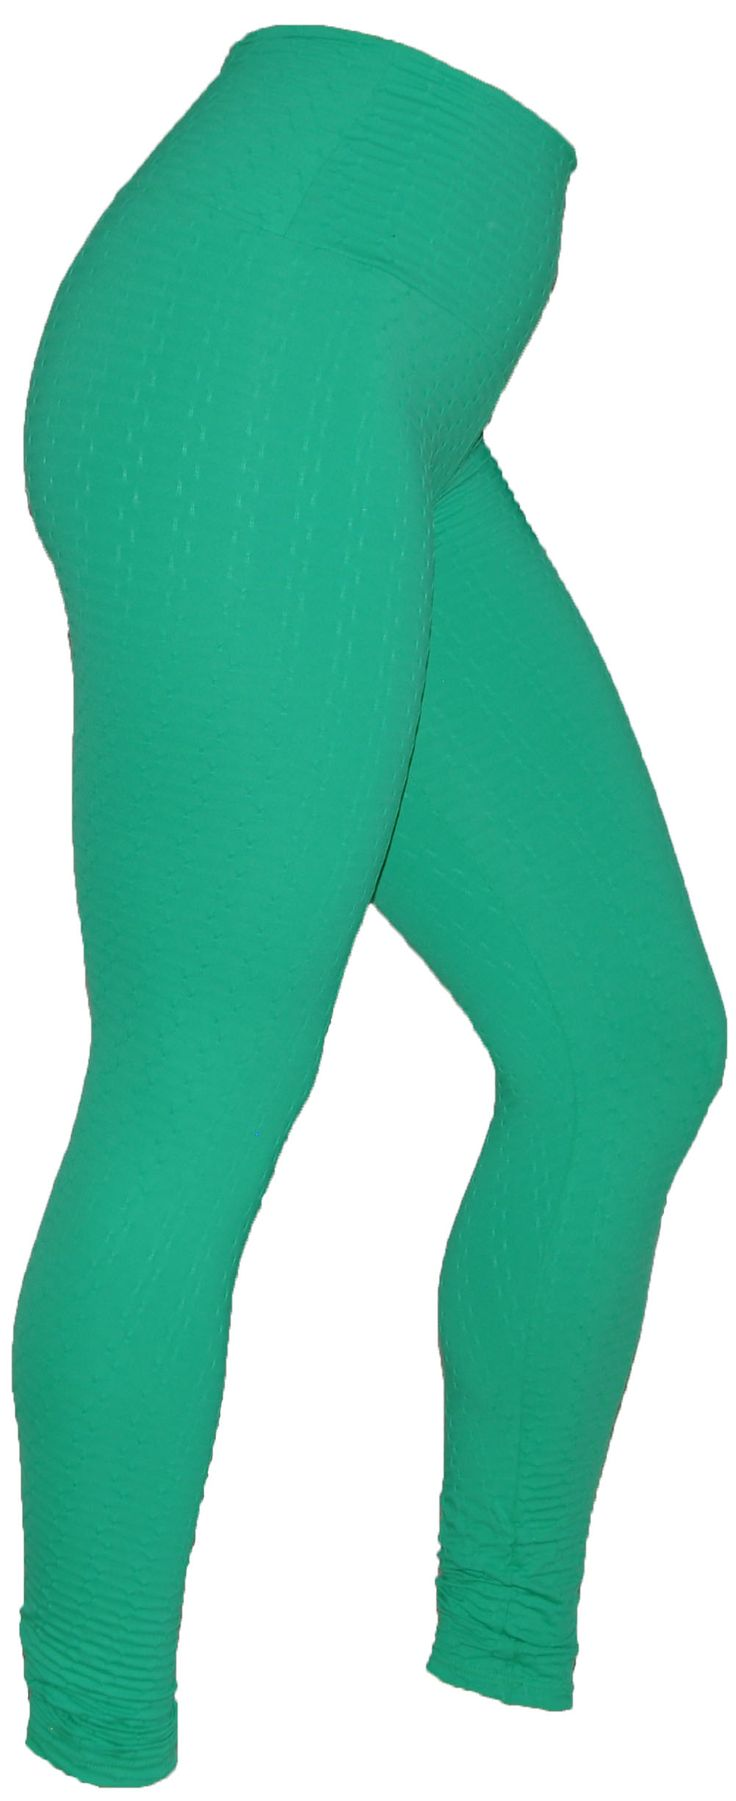 These funky Jacquard leggings are so much fun to wear Leggings are so comfortable to wear and give you flexibility and style, Leggings are the Perfect combination of bold prints and soft microfiber fabric that makes it funky and comfy.  #gymwear